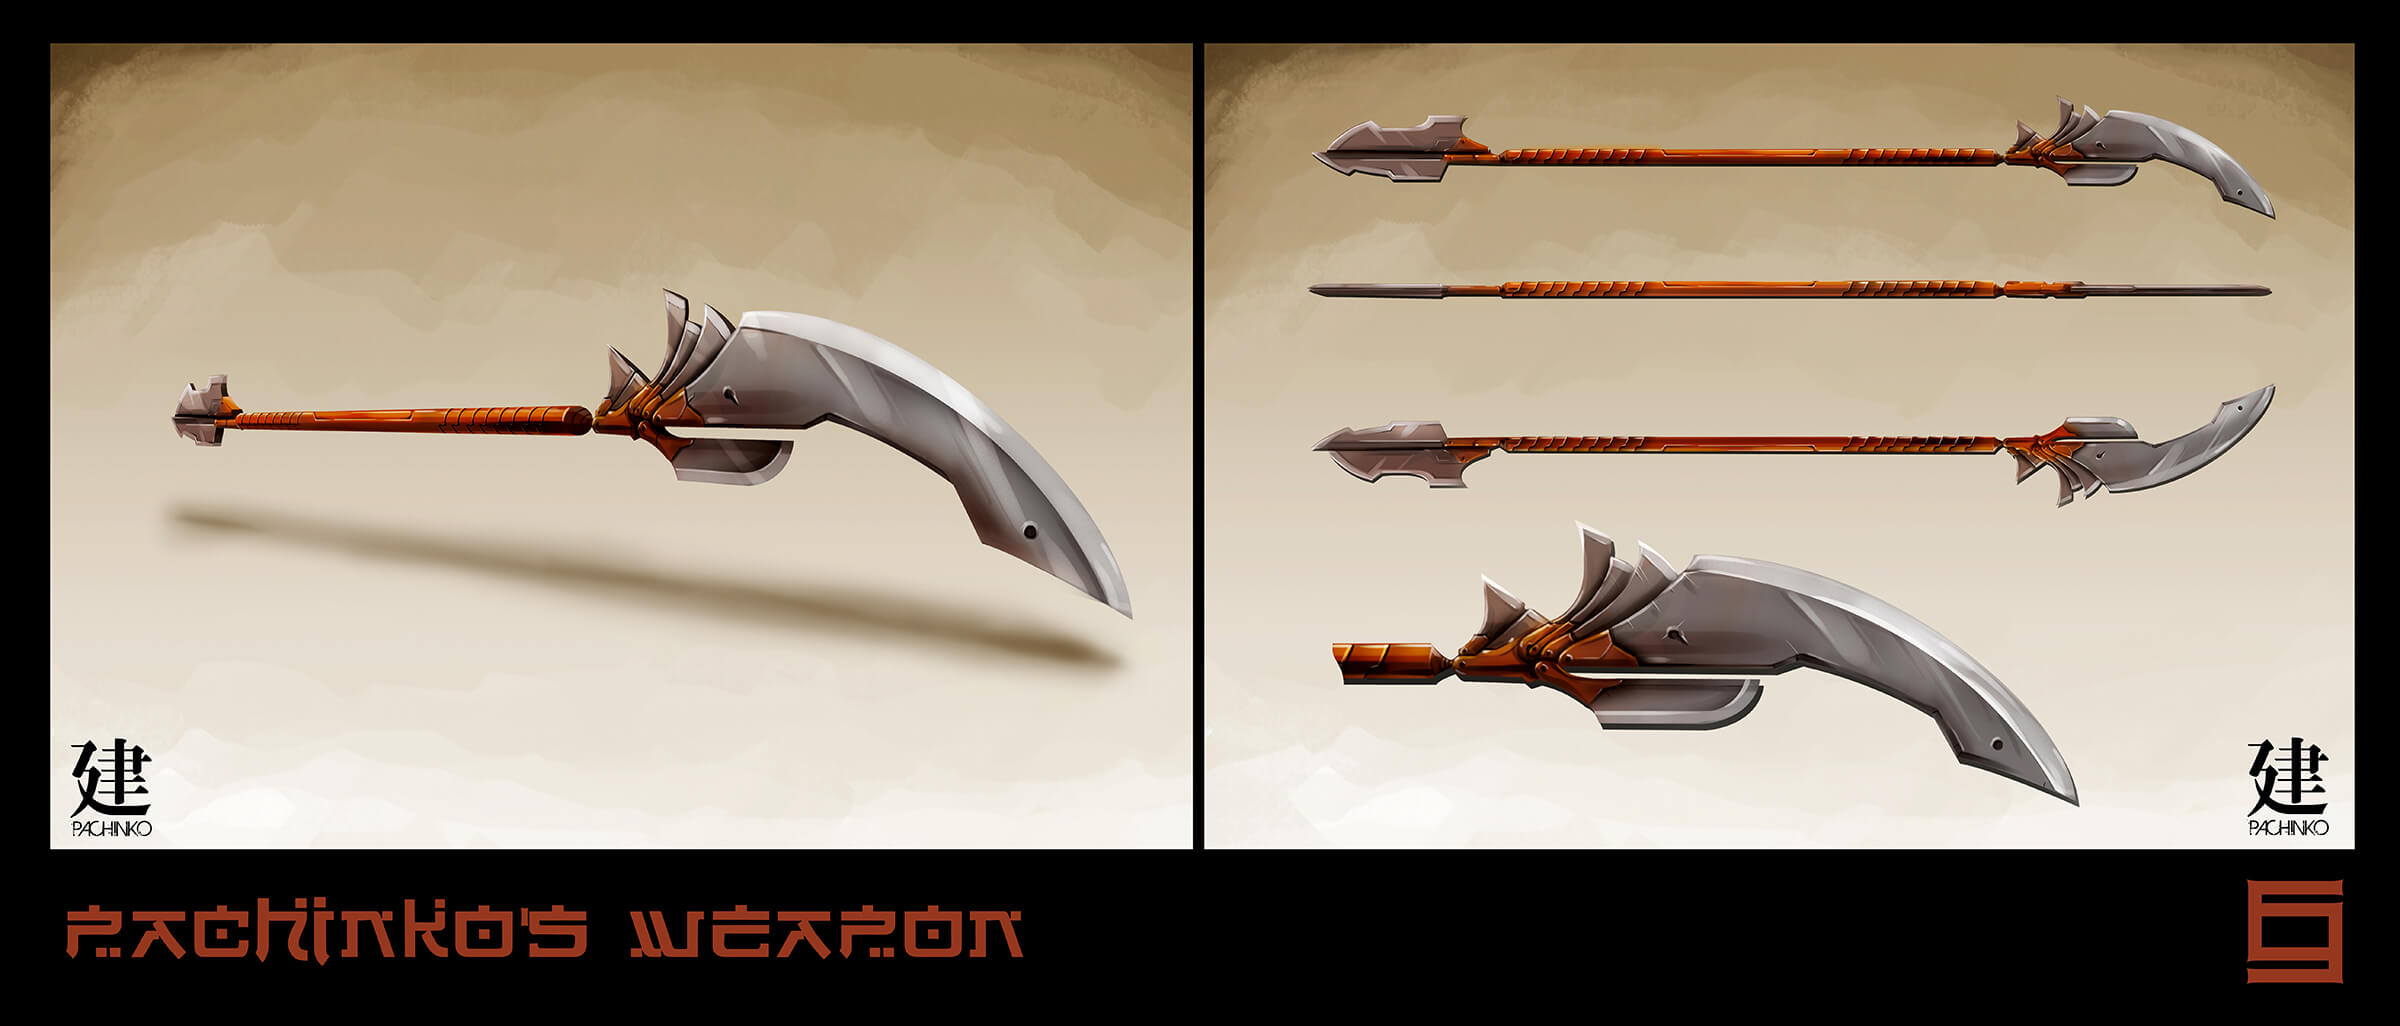 Concept art of a long weapon, bladed at both ends of its orange shaft, seen from different angles